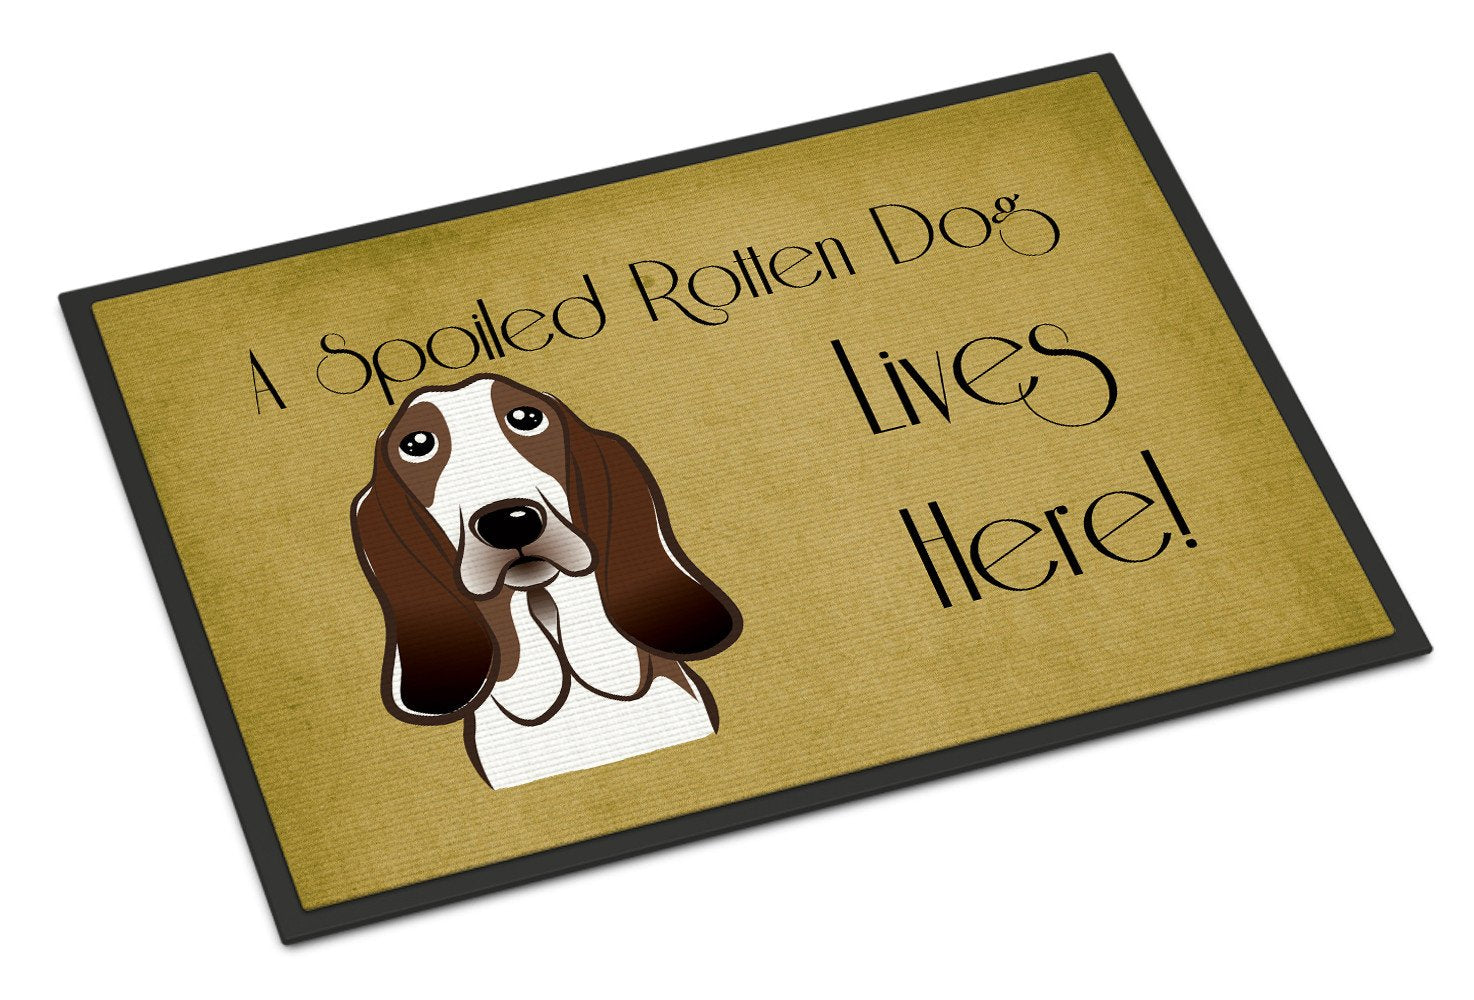 Basset Hound Spoiled Dog Lives Here Indoor or Outdoor Mat 18x27 BB1491MAT - the-store.com